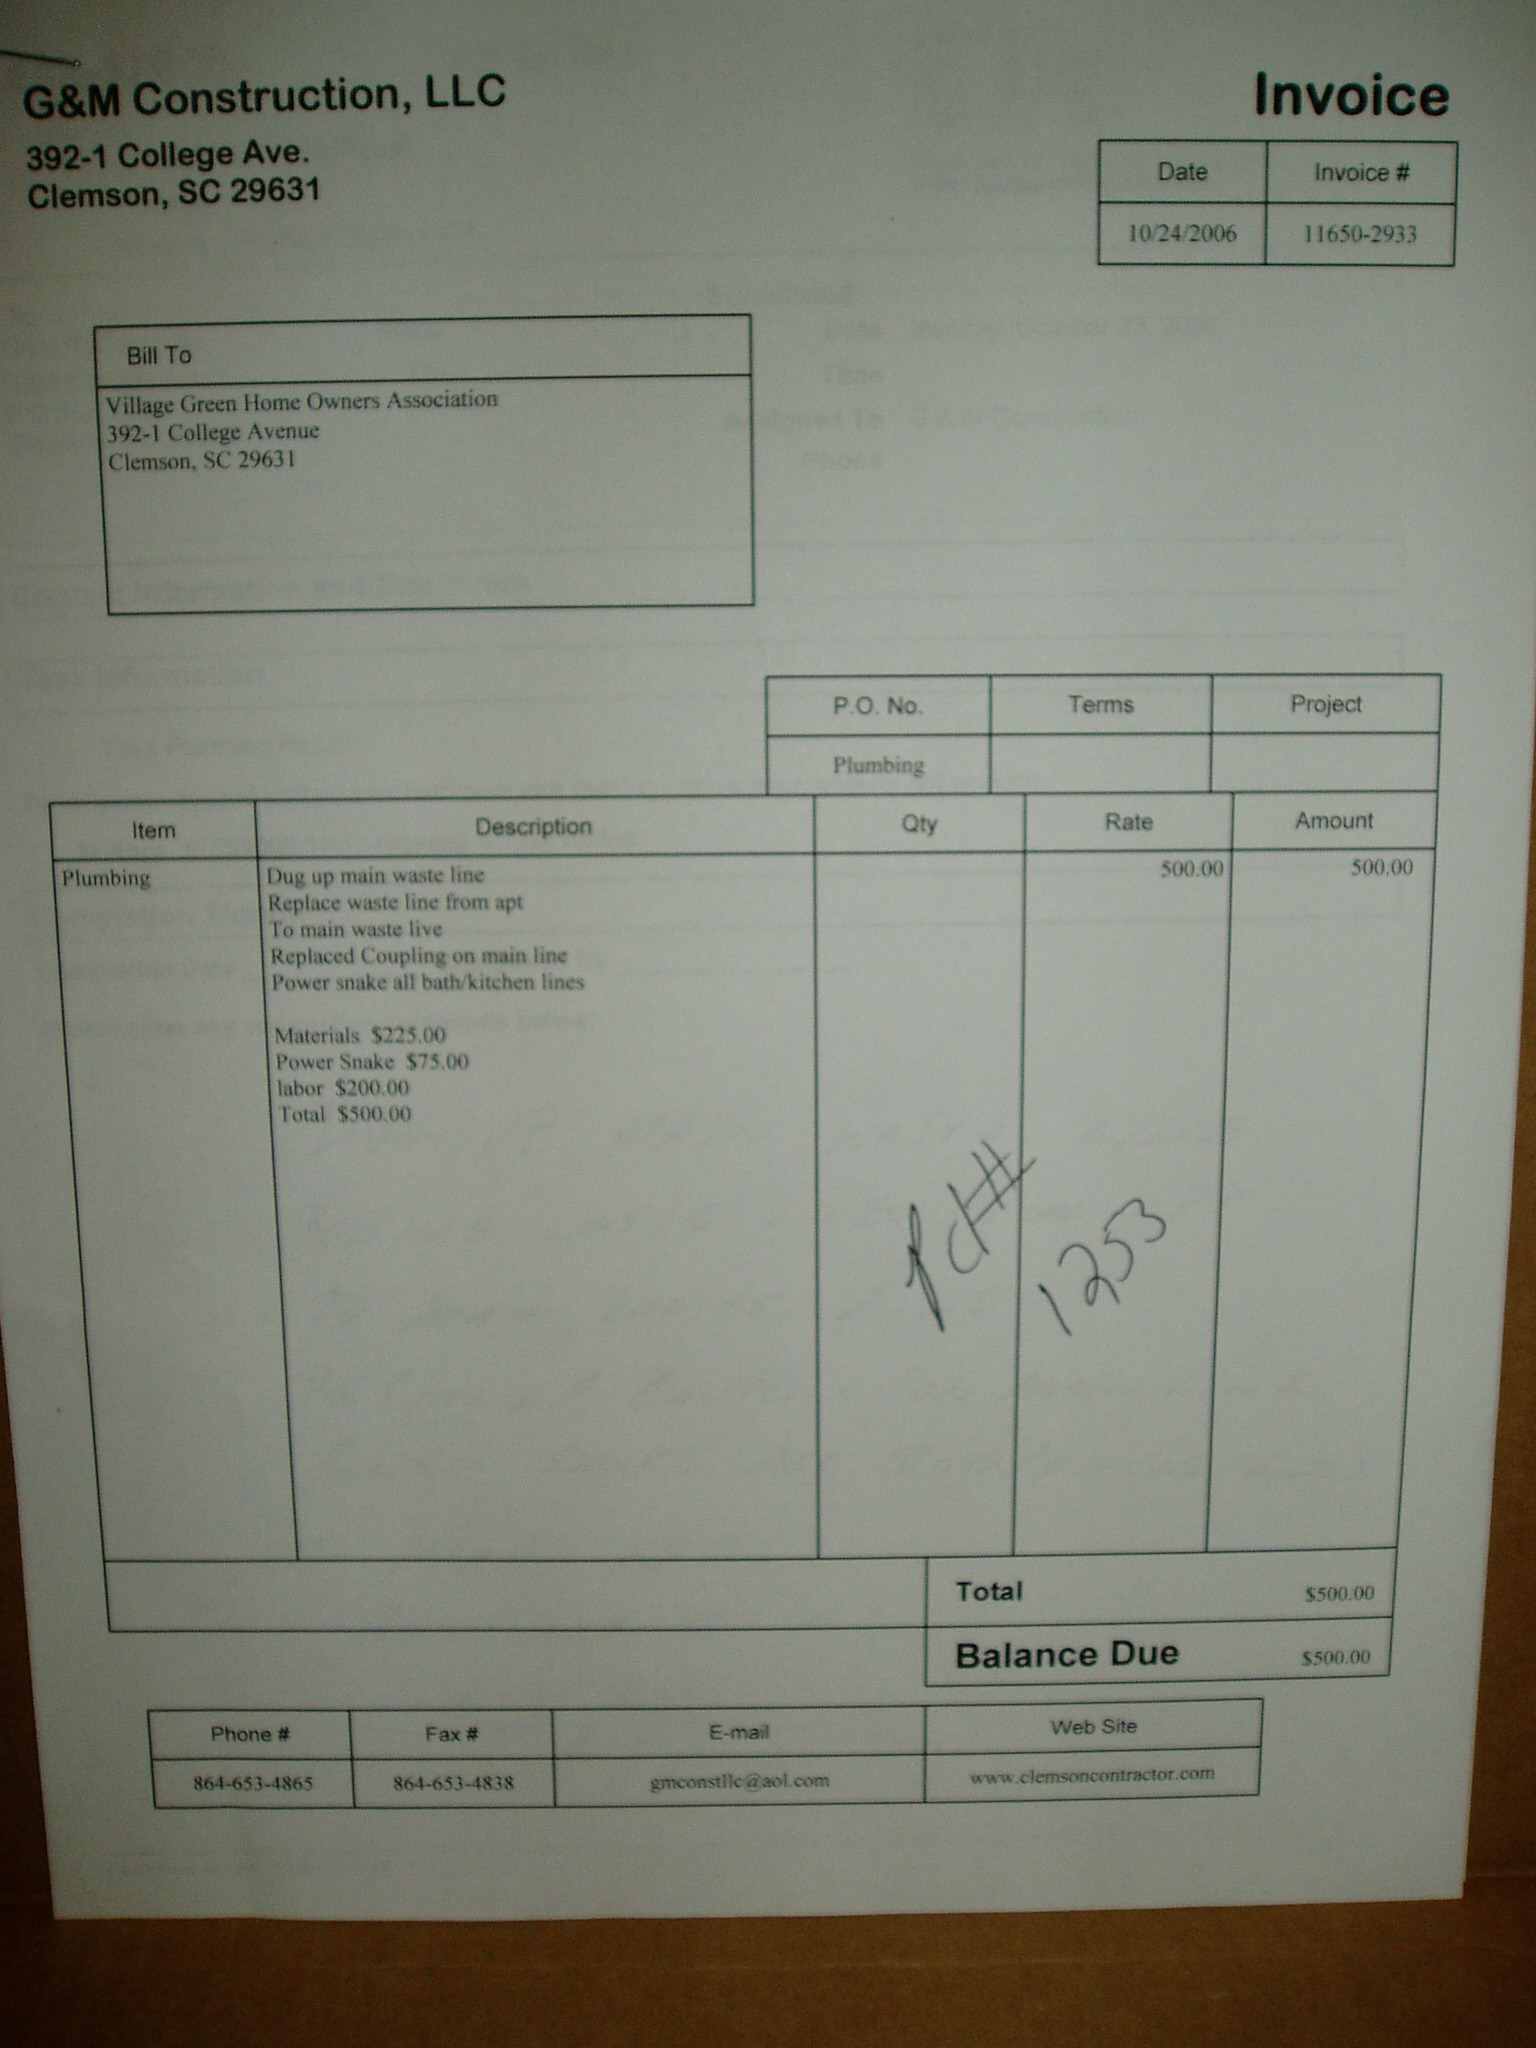 kitchen faucet repair american standard faucets date: 10-24-06 ;unit: #missing from invoice ;cost: $500.00 ...